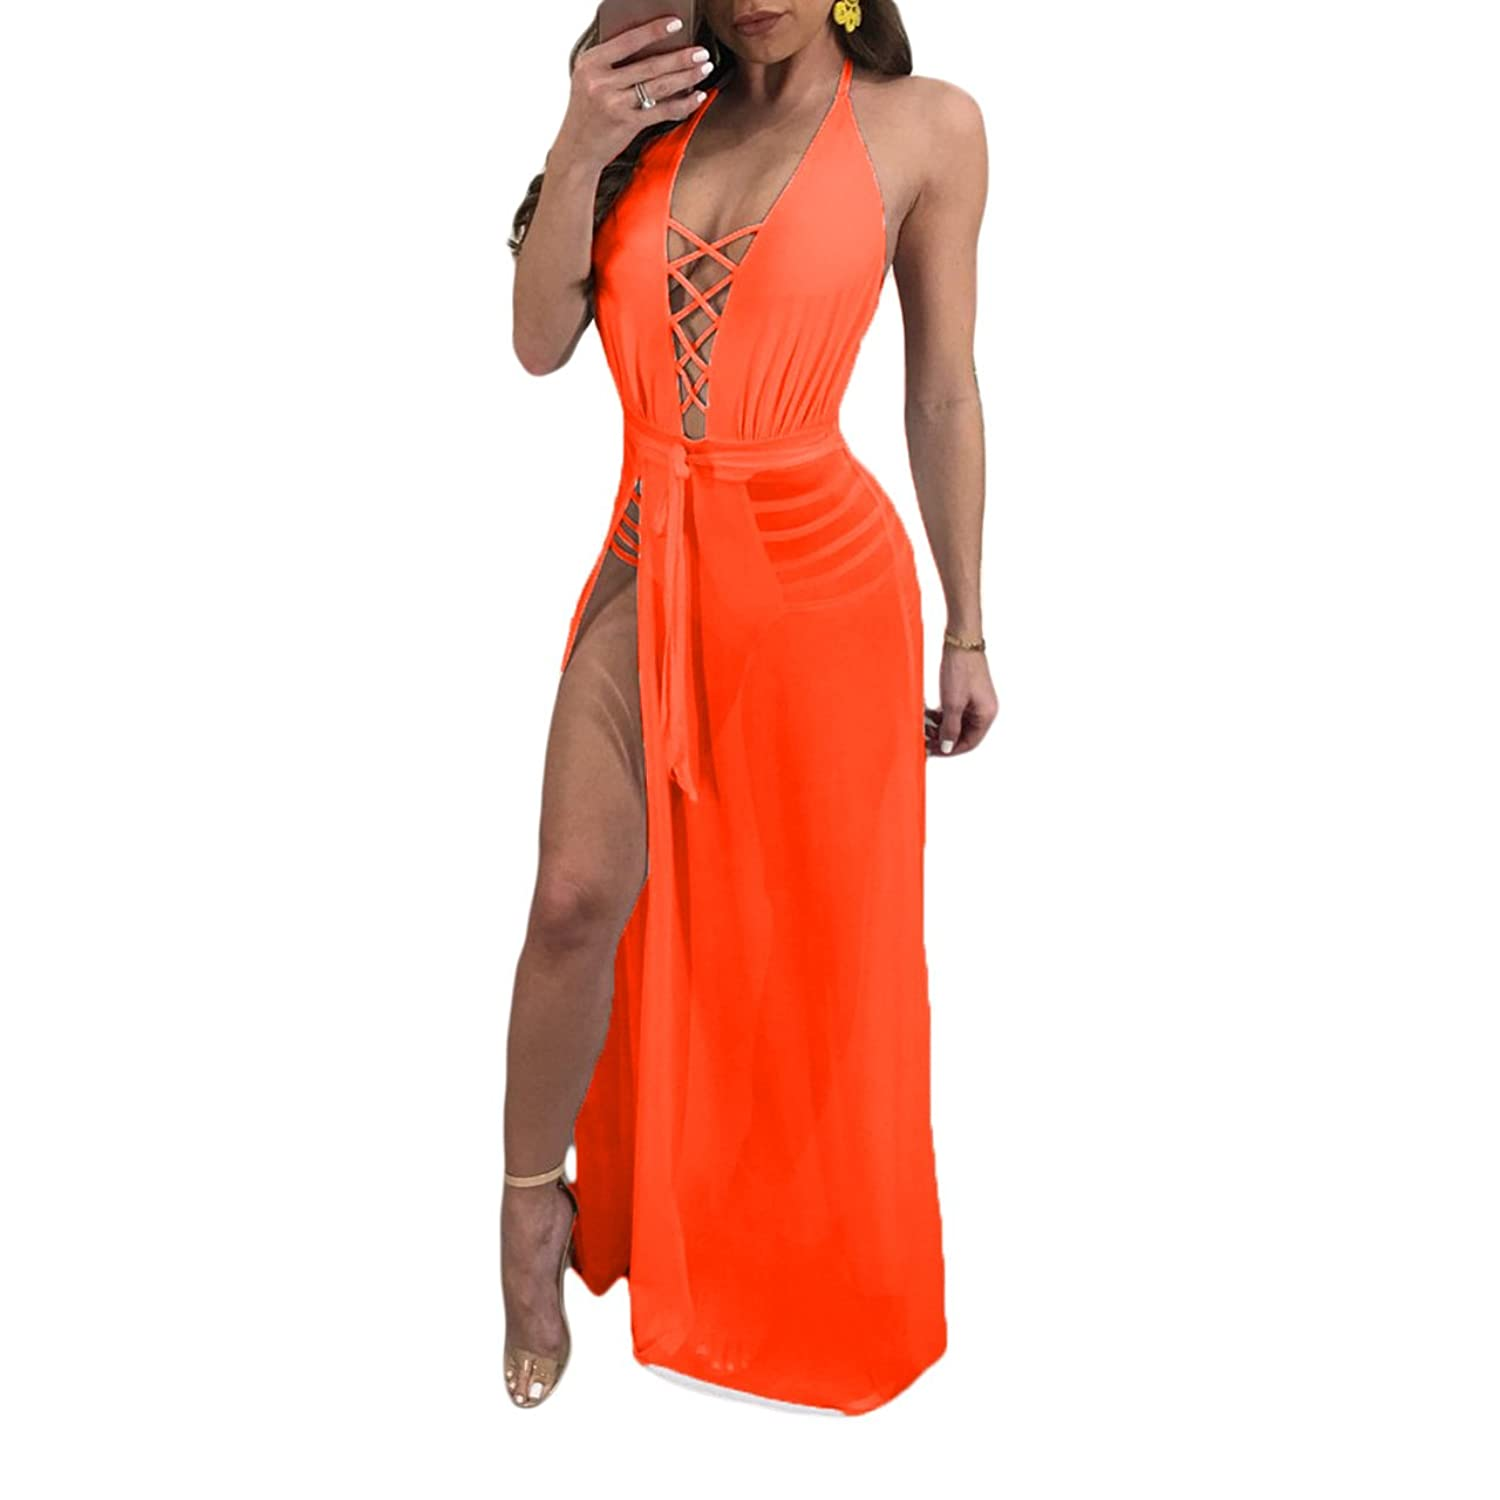 Hard-Working Evening Party Women Jumpsuit Summer Leggings Sequin Halter Deep V Neck Sleeveless Fashion Sexy Slim Fit Elegant Backless 2019 New Fashion Style Online Women's Clothing